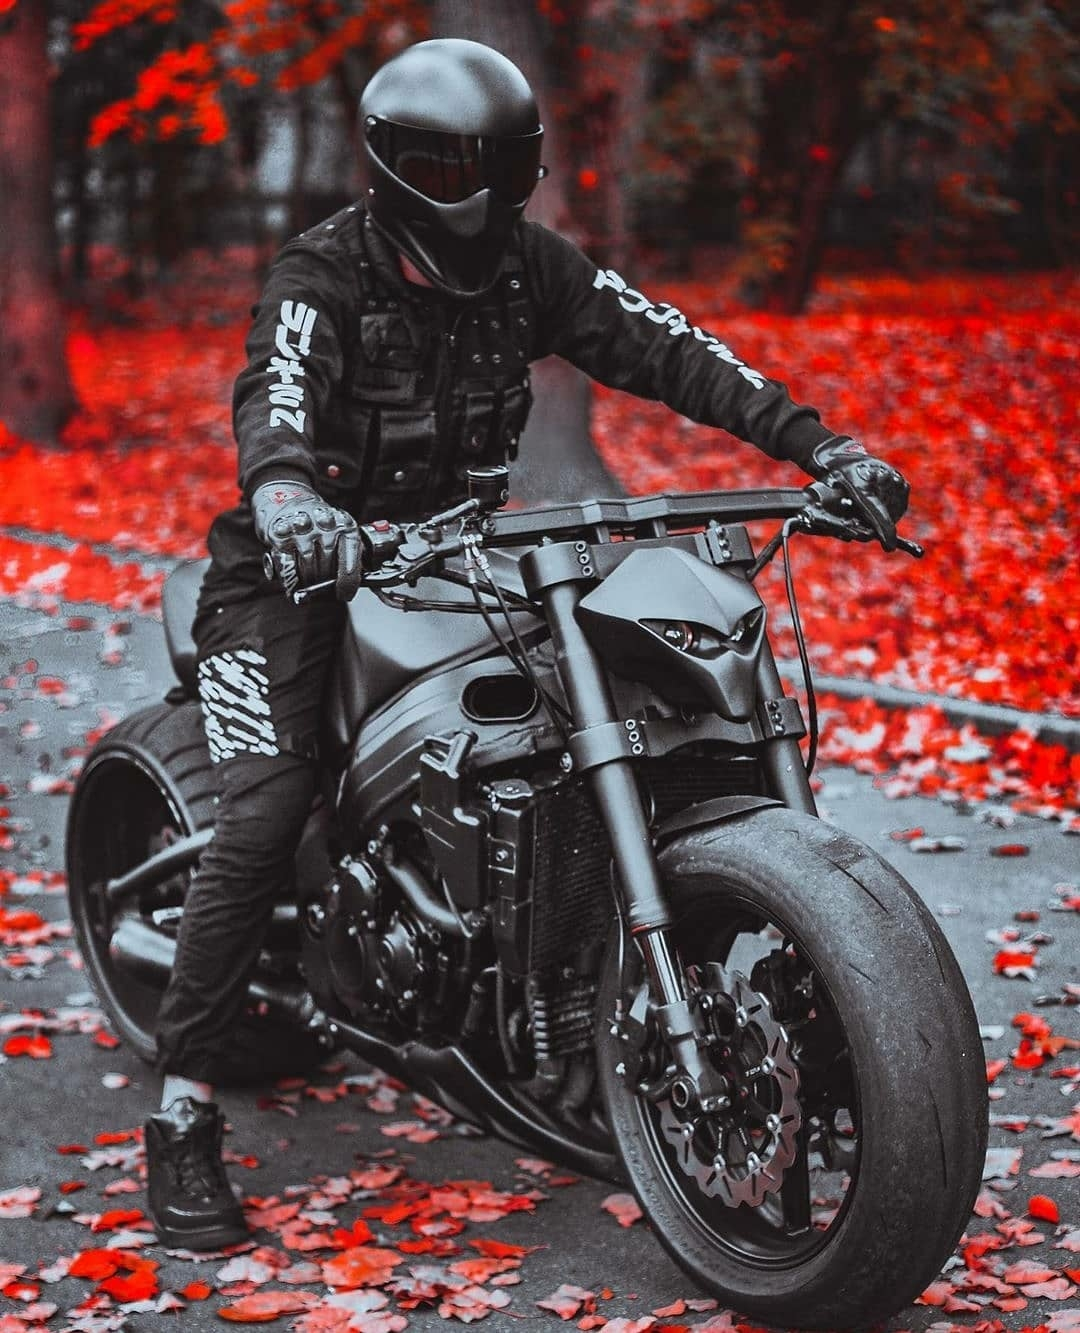 the manly life - mean looking motorcycle